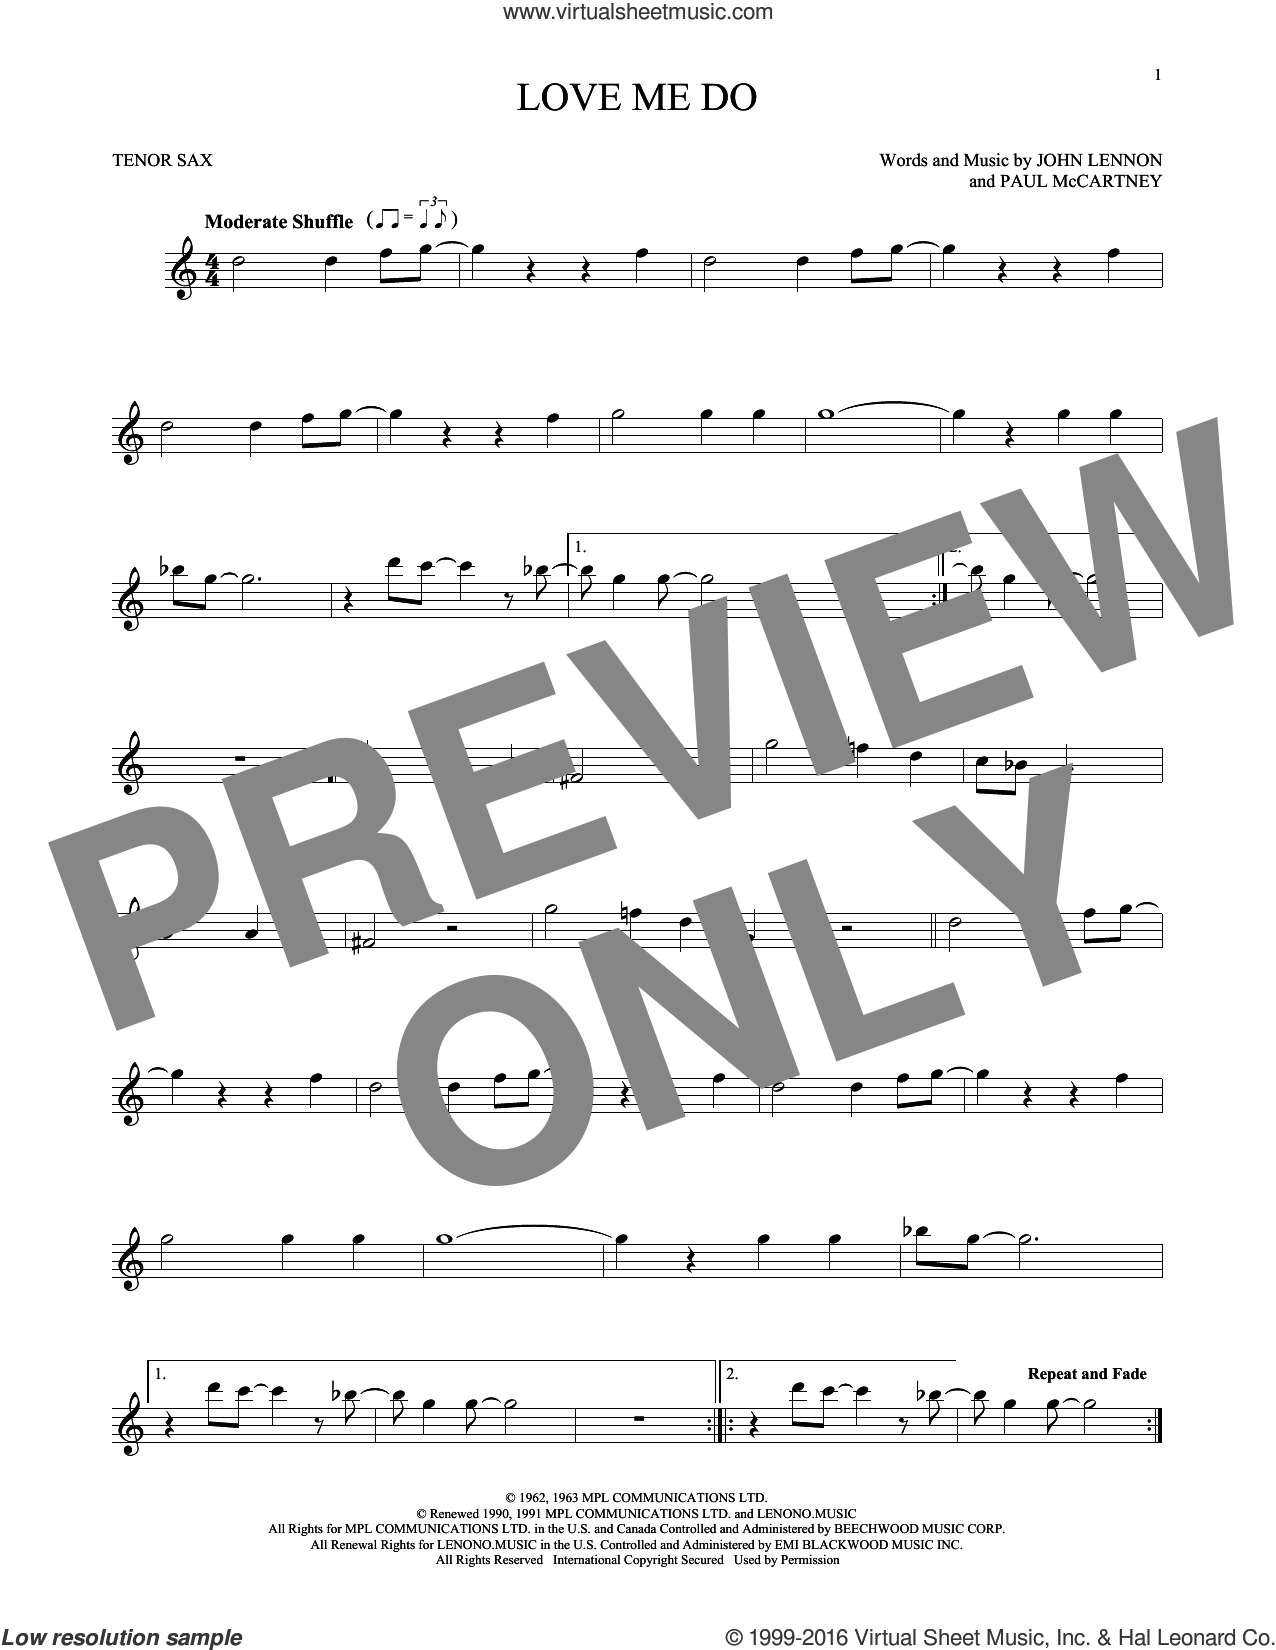 Love Me Do sheet music for tenor saxophone solo by The Beatles, John Lennon and Paul McCartney. Score Image Preview.